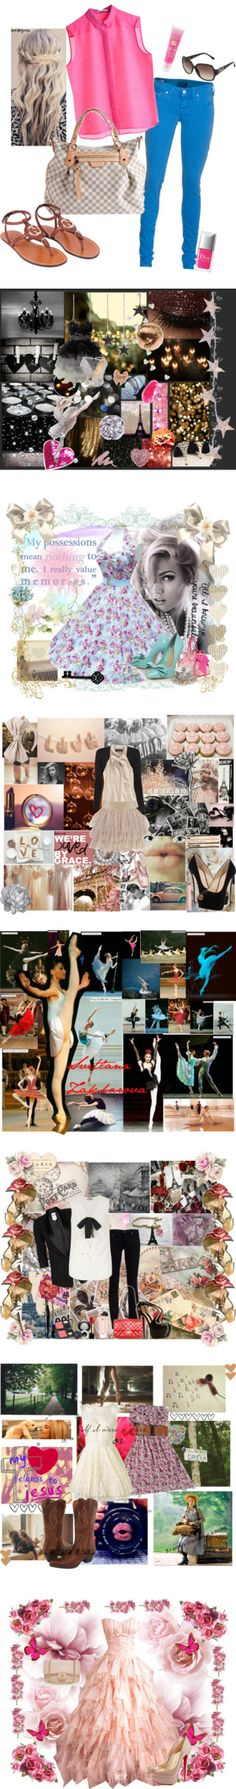 """""""Contest Winning Sets"""" by ballerinagal16 ❤ liked on Polyvore"""